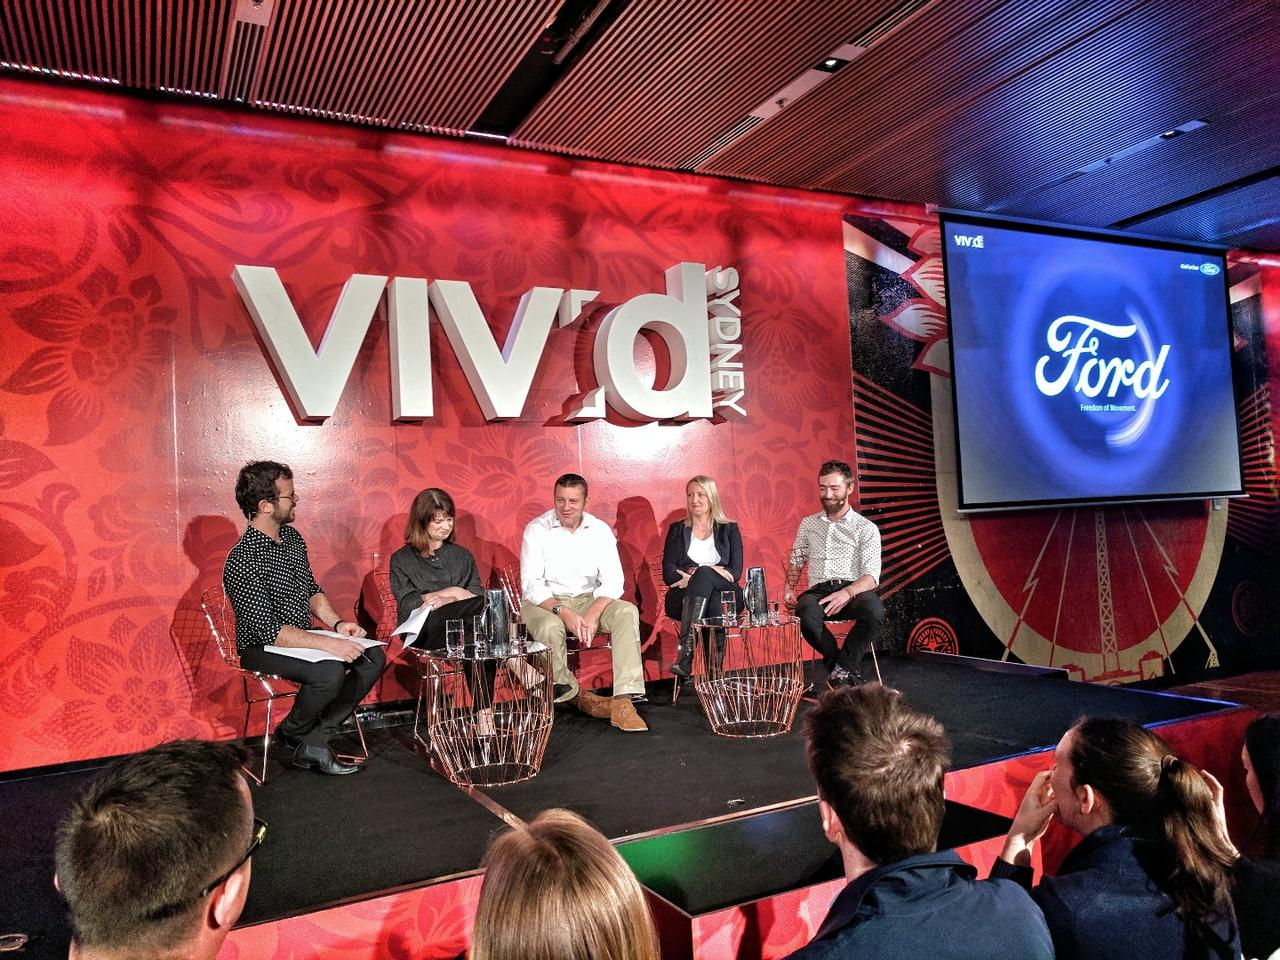 Ford Australia President and CEO Graeme Whickman (centre) with fellow panellists Bryony Cooper (left) and Catherine Ball (right) and moderators at a future mobility workshop as part of Sydney's Vivid street festival.